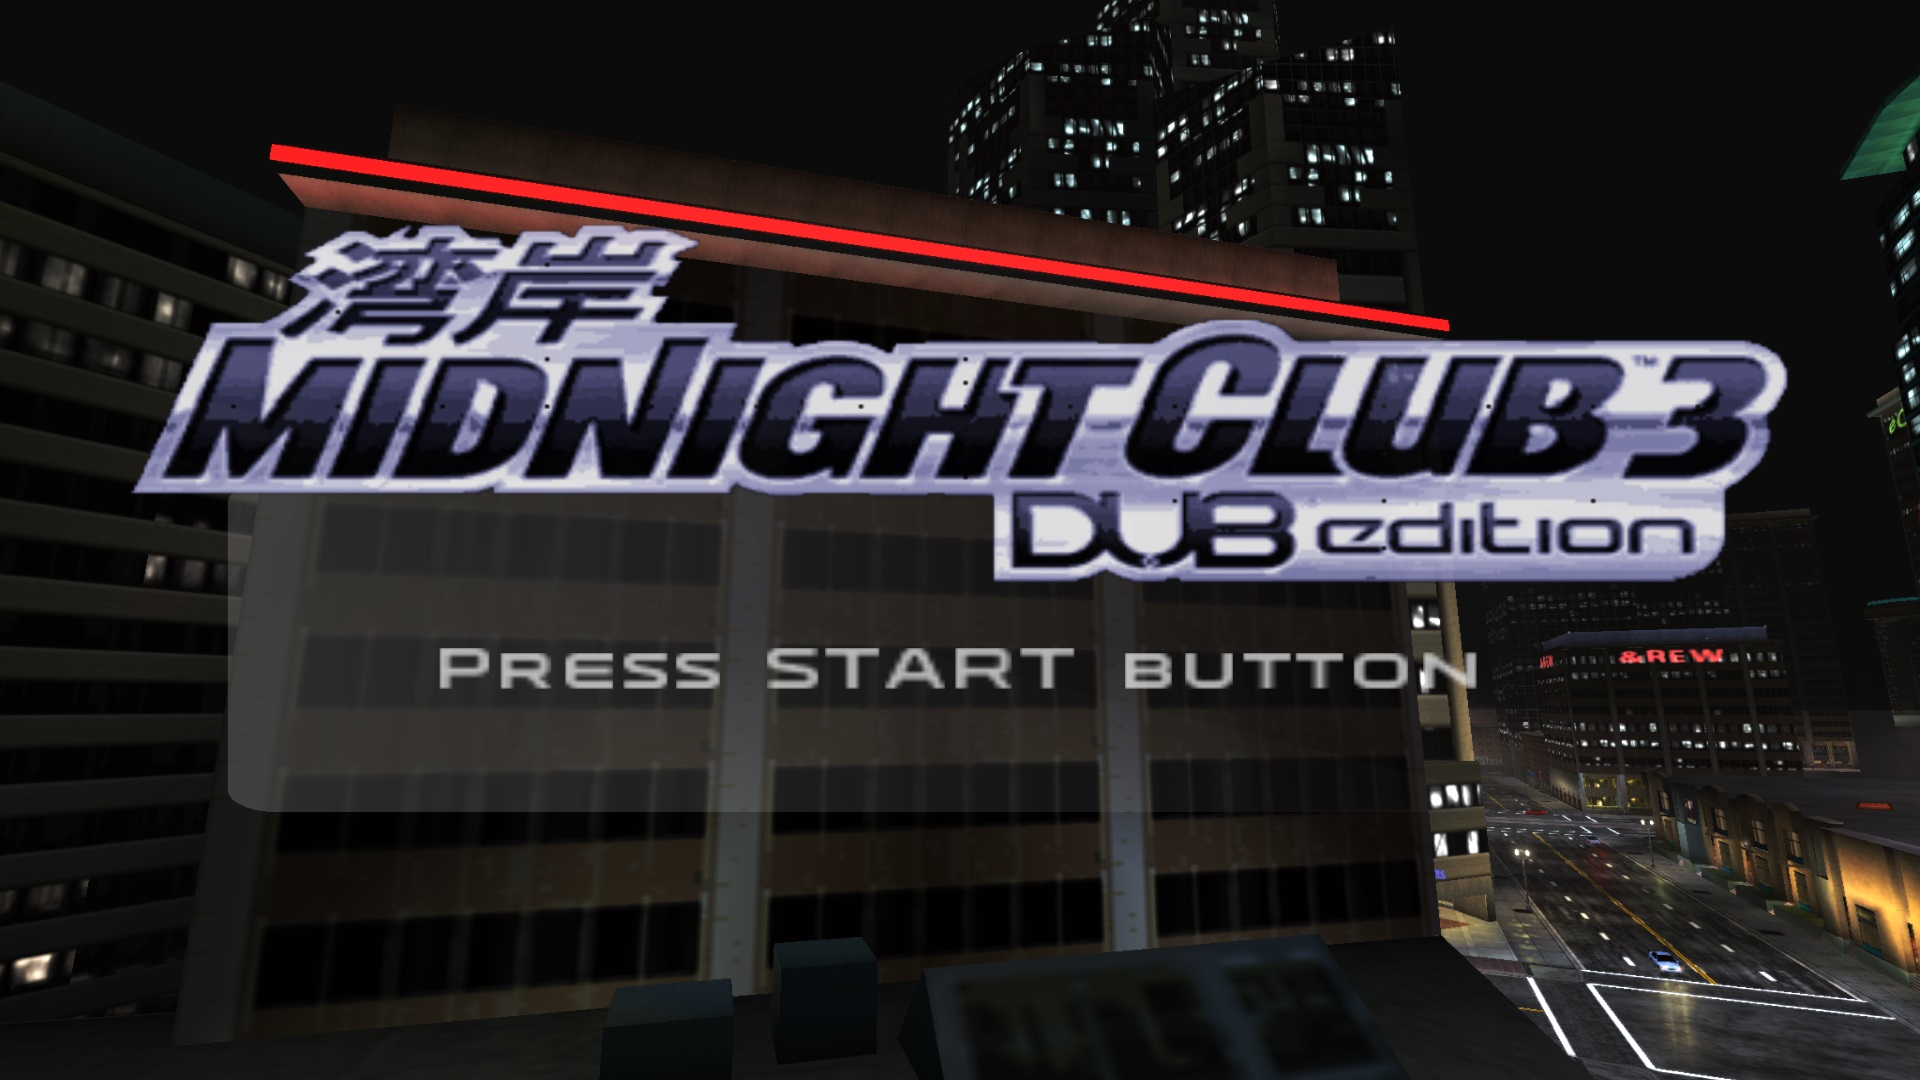 midnight club 3 rockstar logos